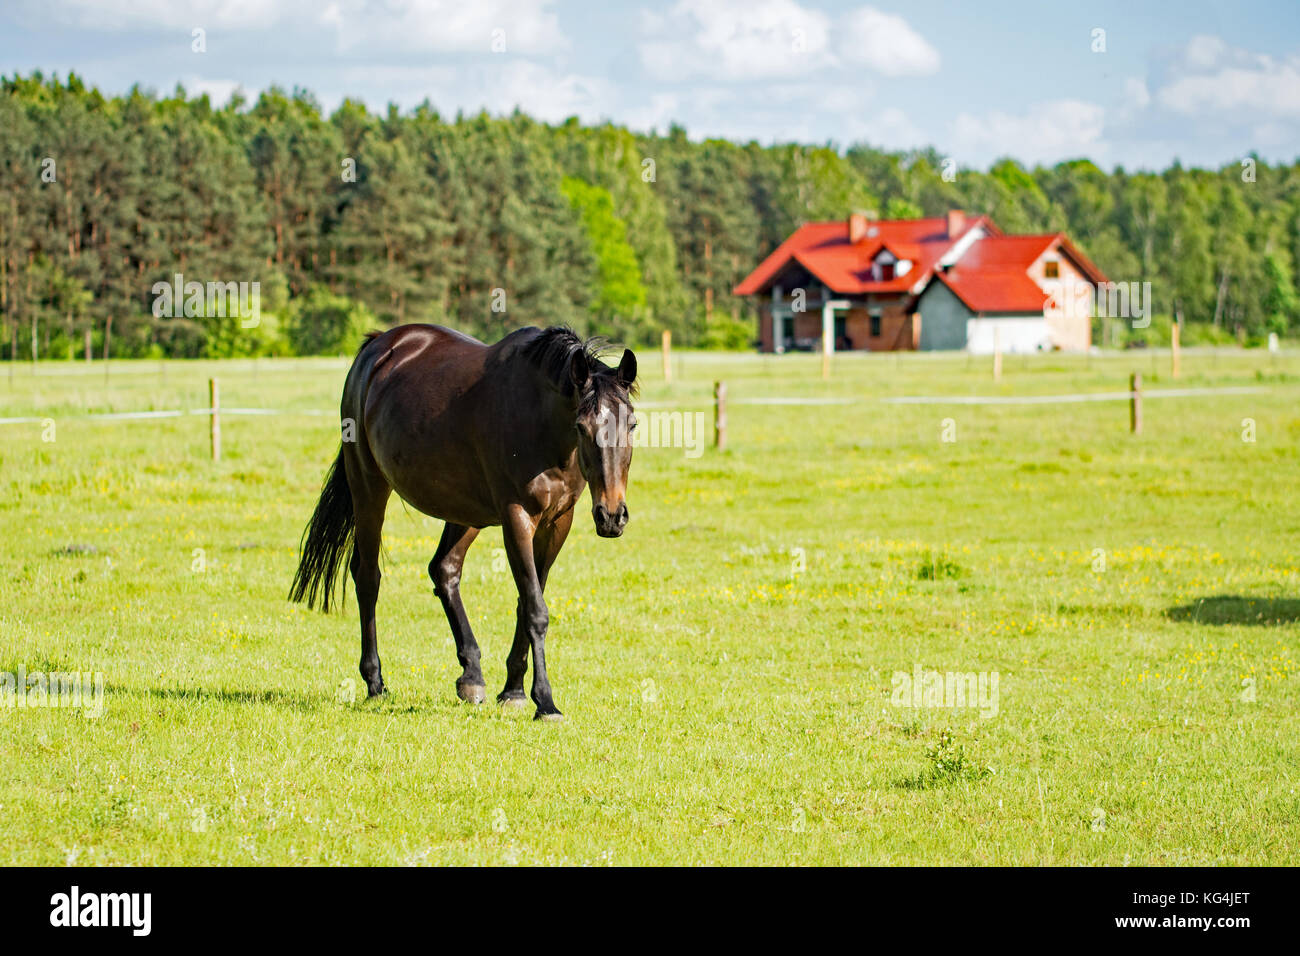 Beautiful dark bay horse walking on a meadow with a house under consrtuction in the background - Stock Image